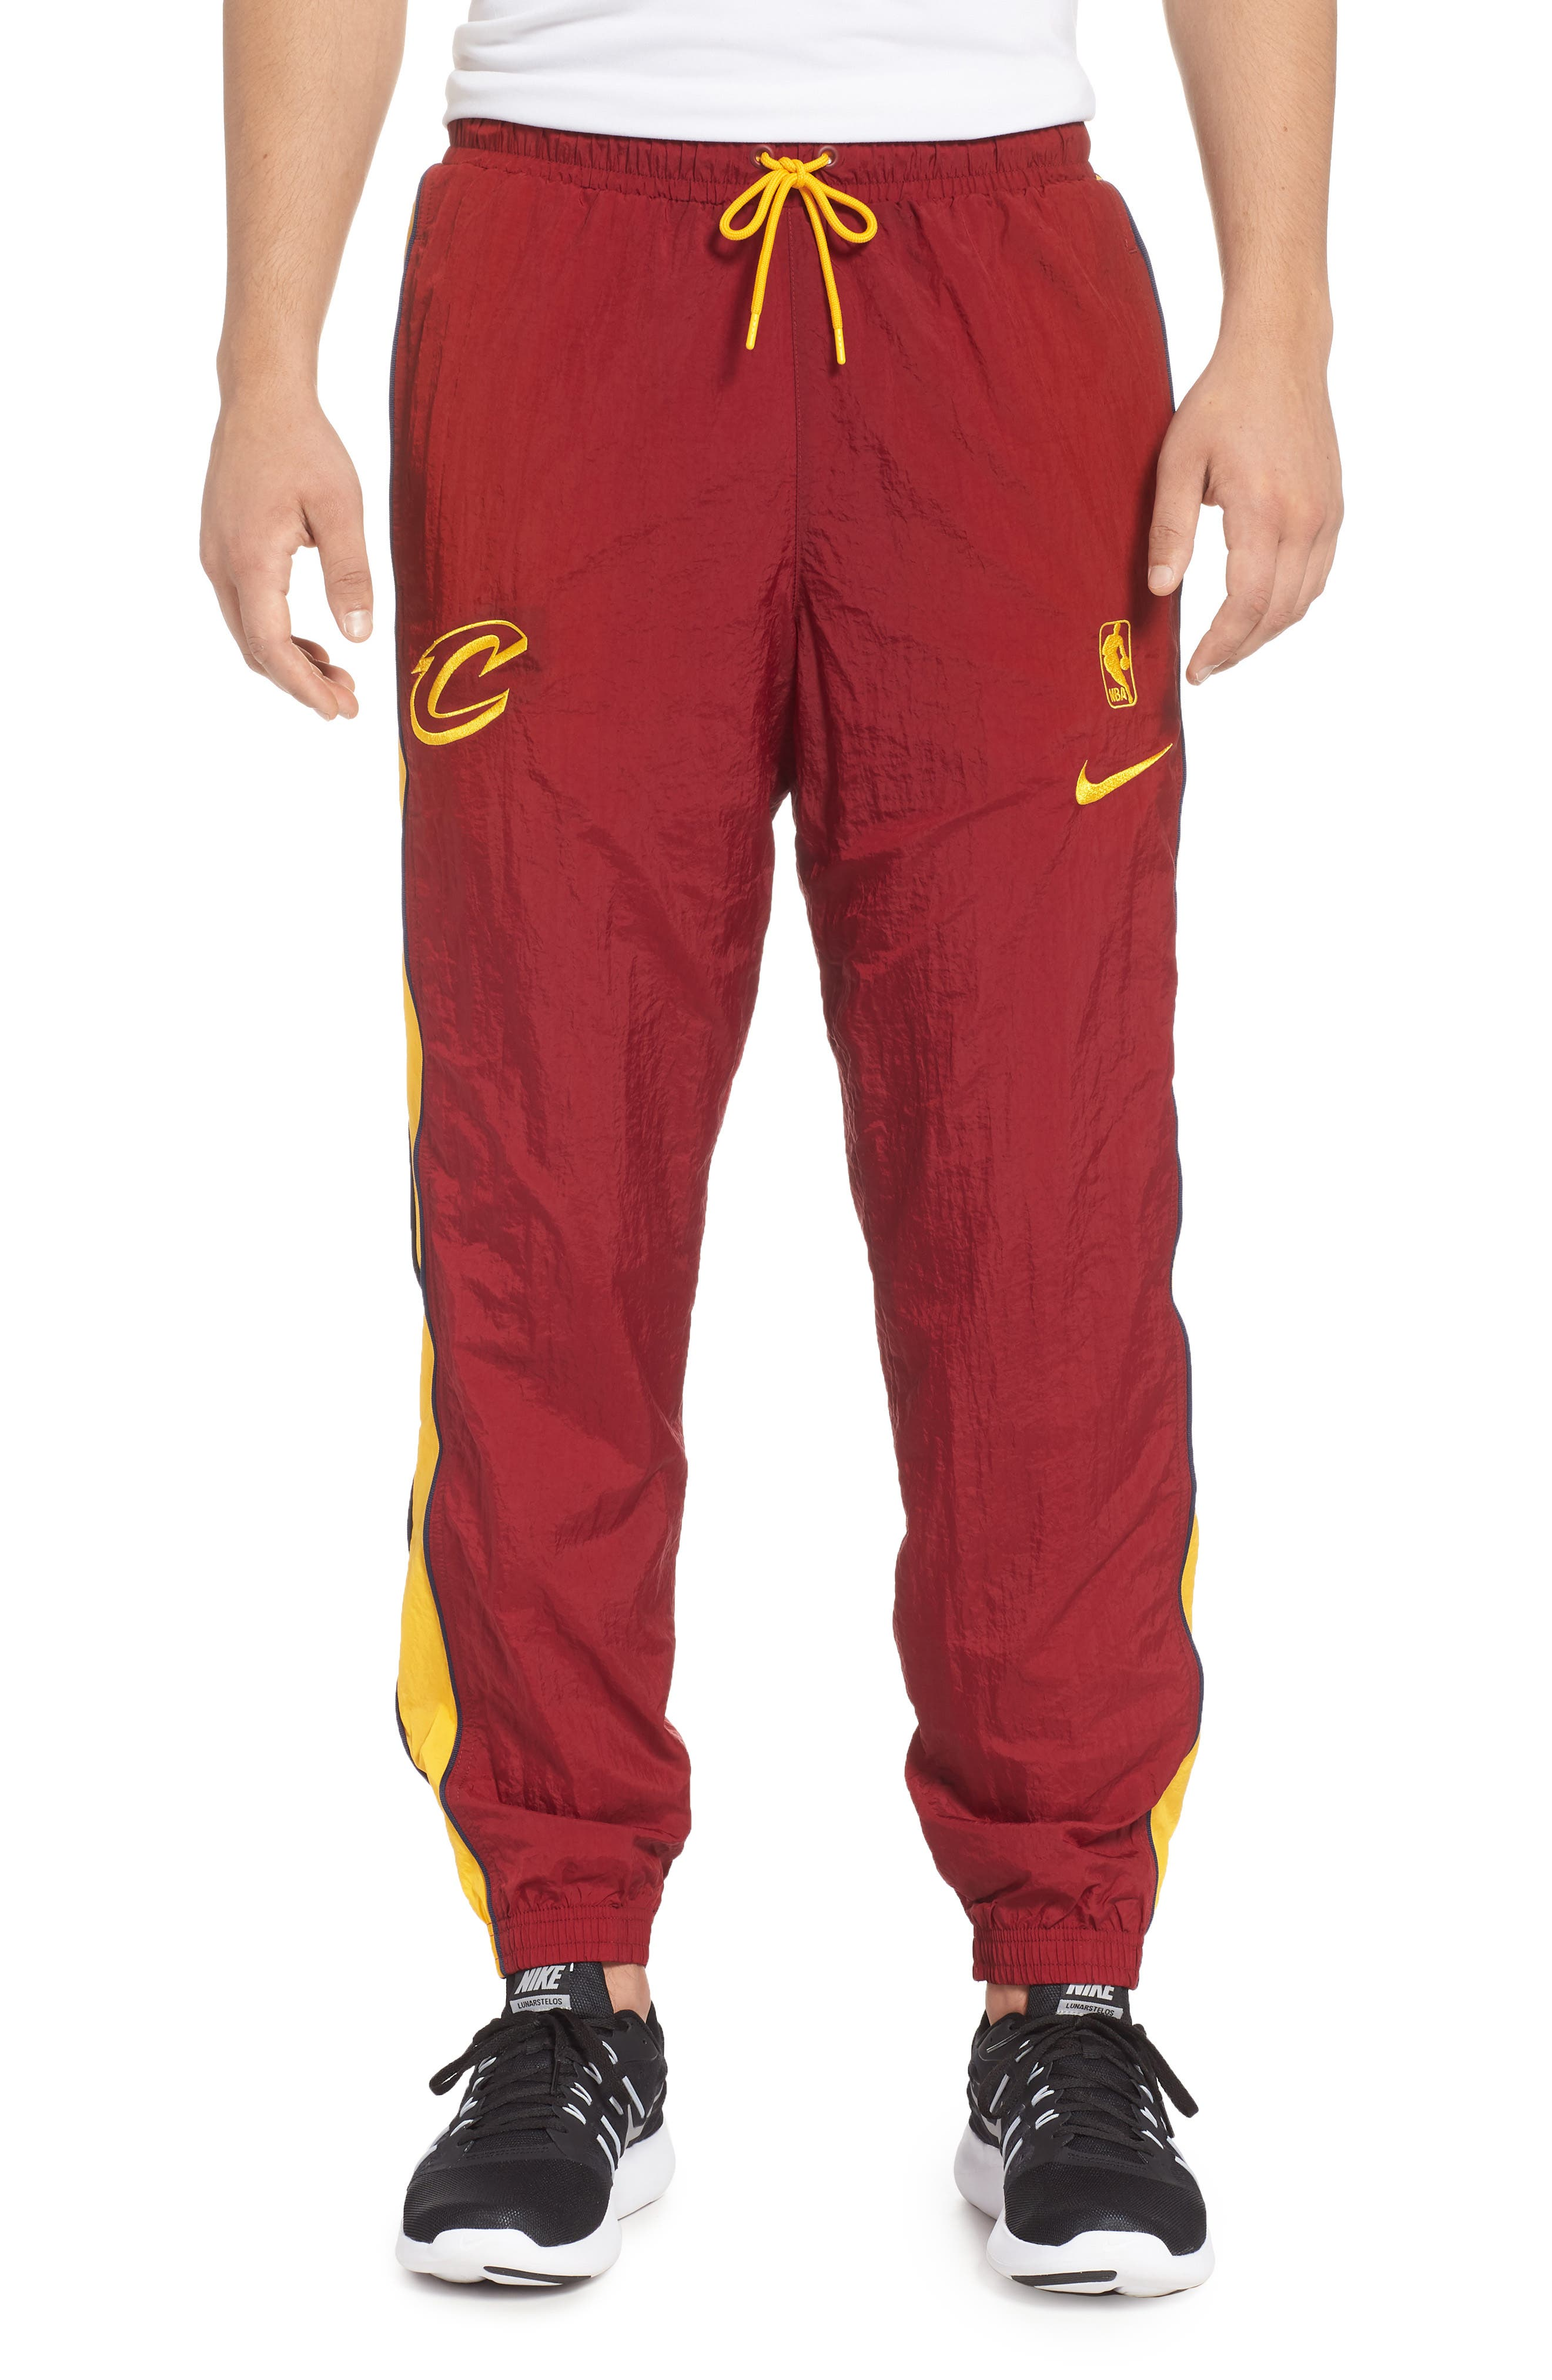 Cleveland Cavaliers Tracksuit Pants,                         Main,                         color, TEAM RED/ UNIVERSITY GOLD